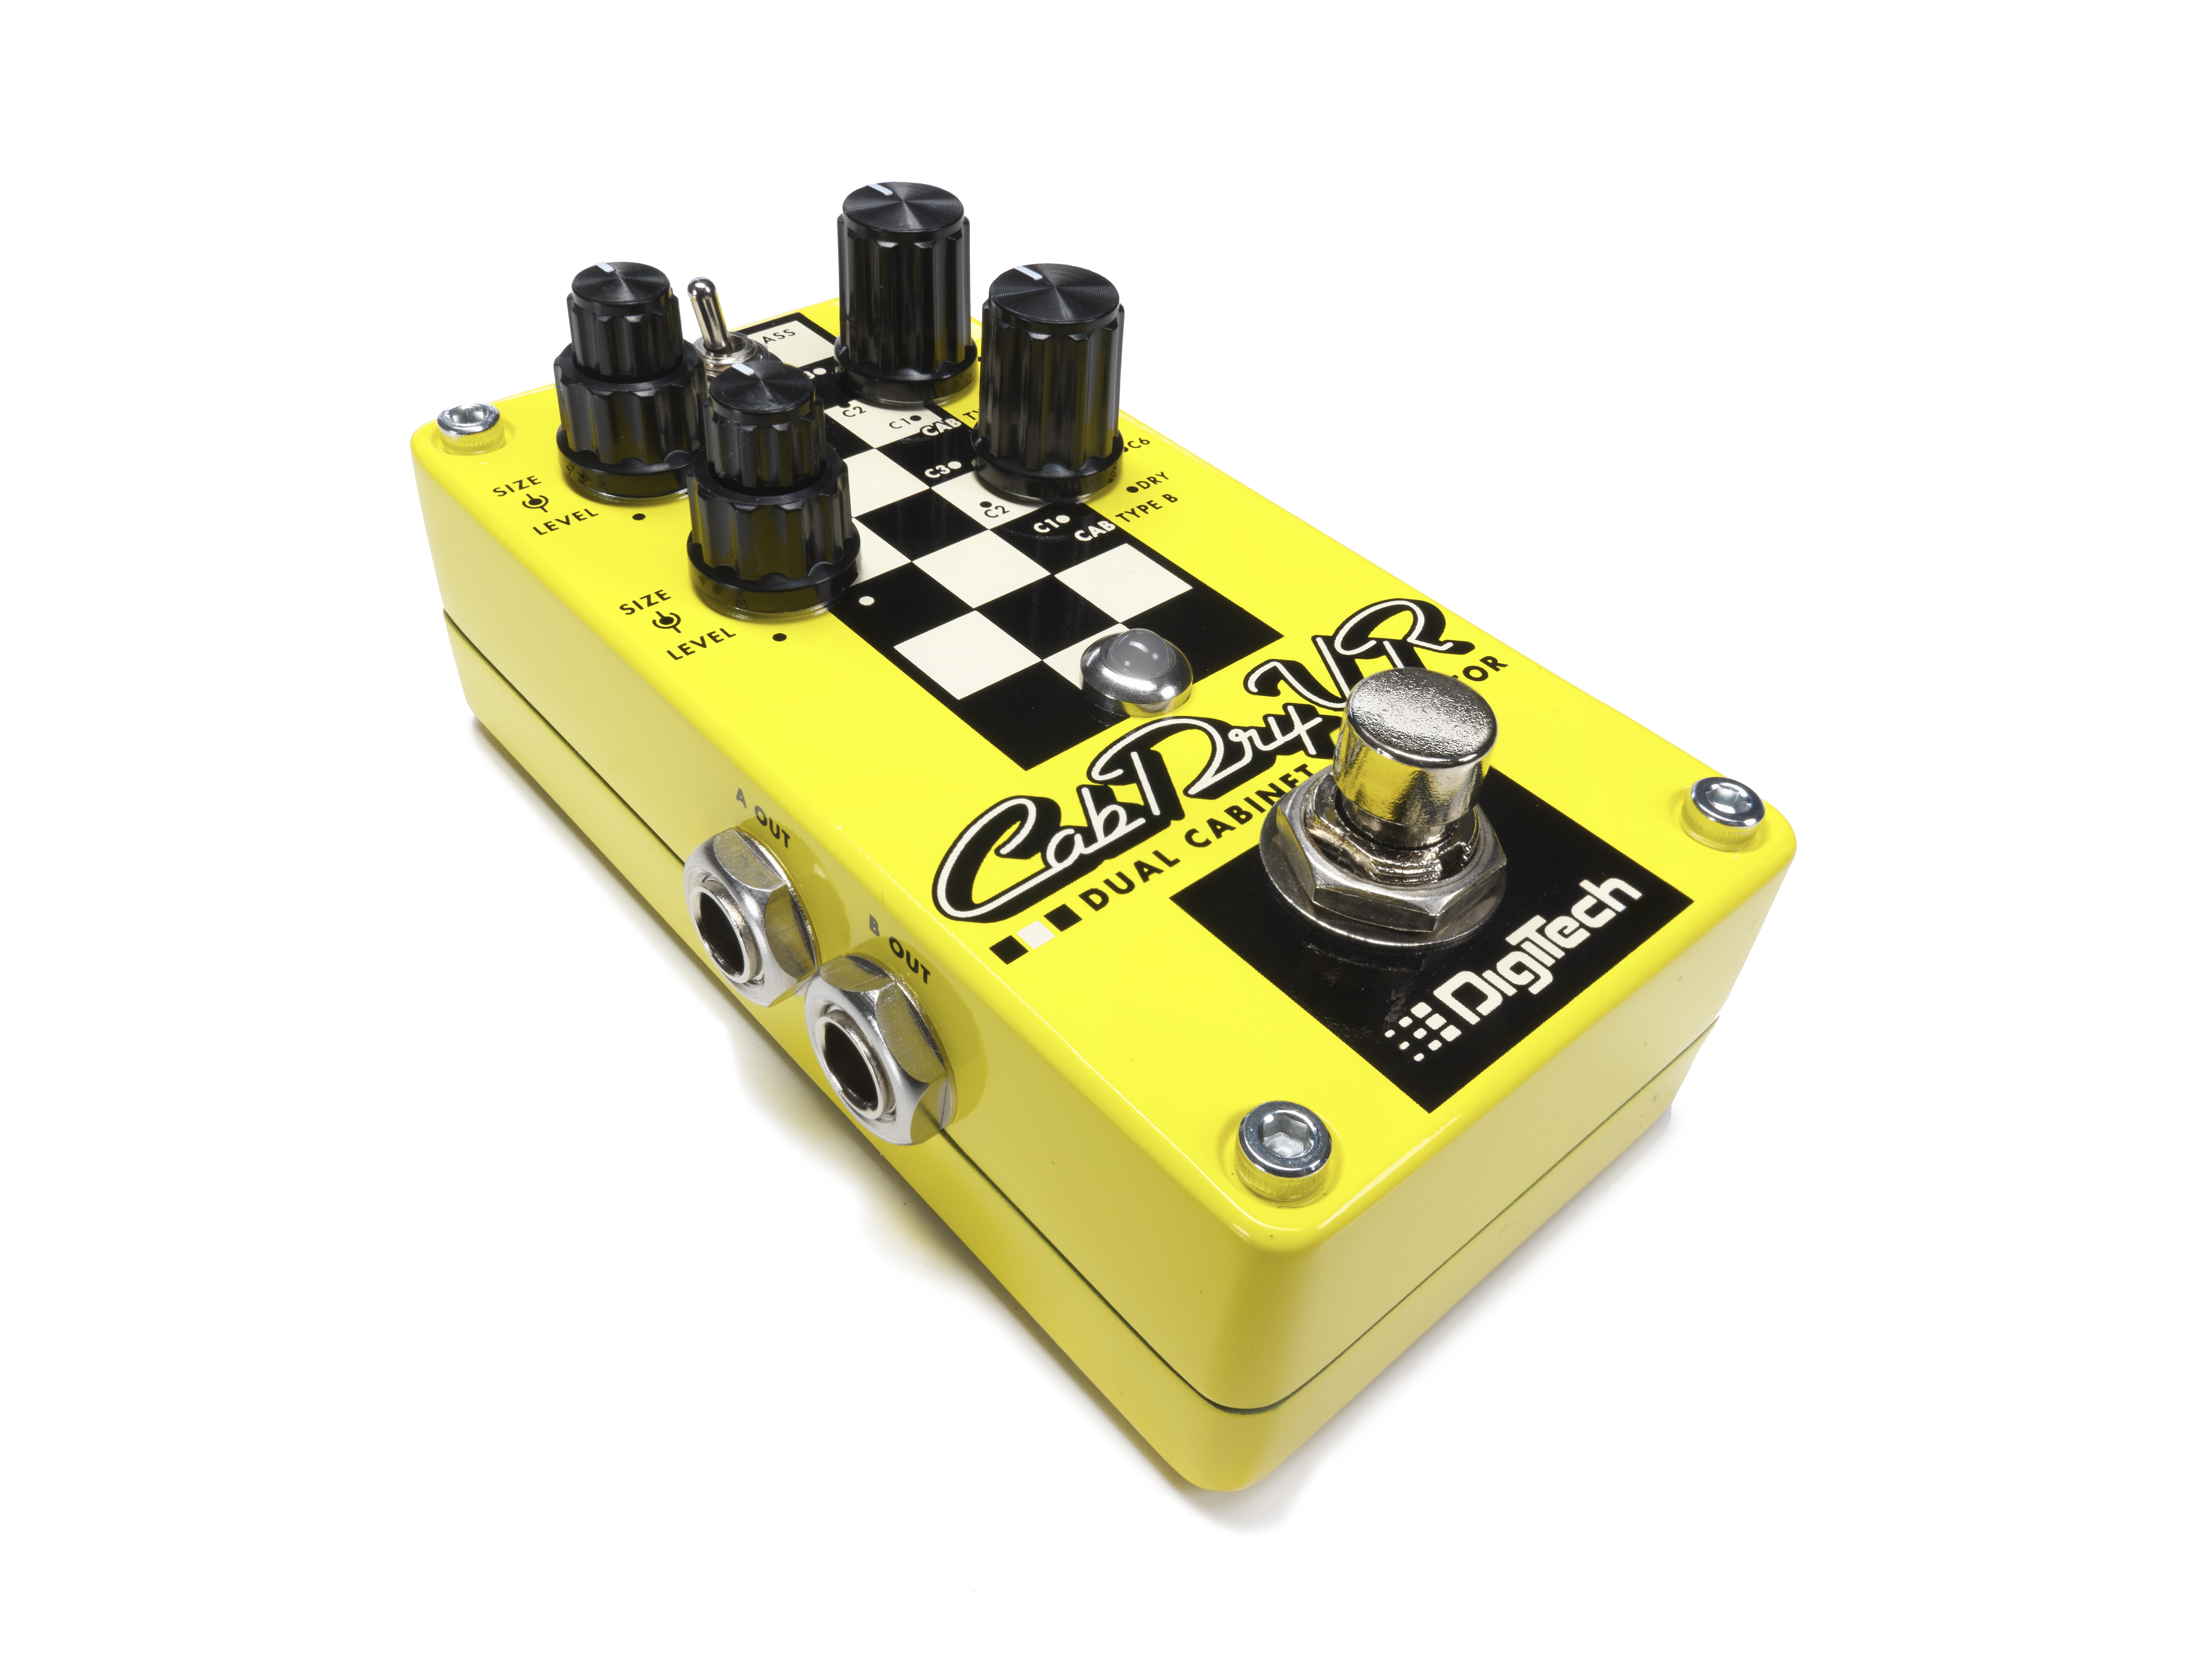 Cabdryvr Digitech Guitar Effects